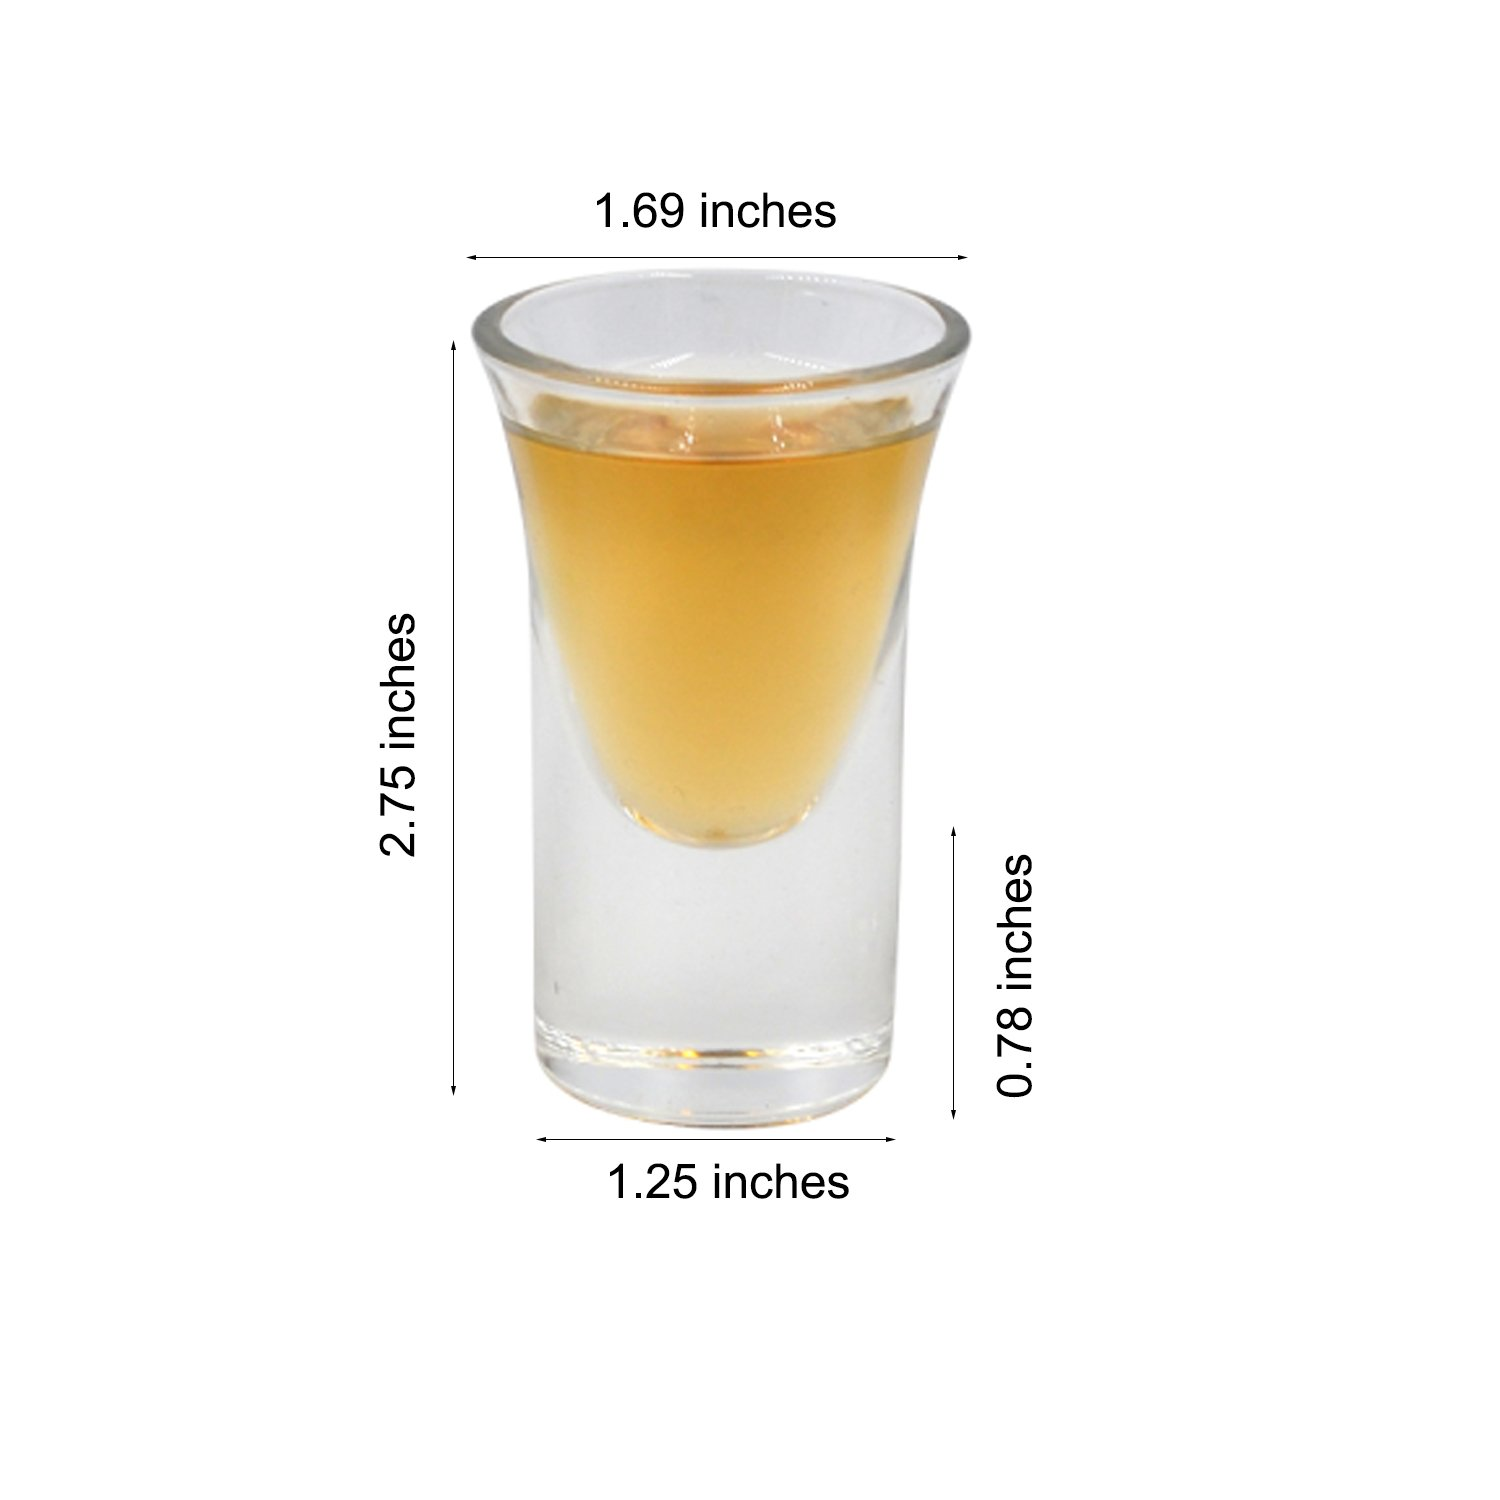 D/&Z 6 Set Shot Glass with Acrylic Transparent Cup Holder for Barware,Kitchen Storage Whisky Brandy Vodka Rum and Tequila Shot Set,0.75oz Shot Glass liquor Tray